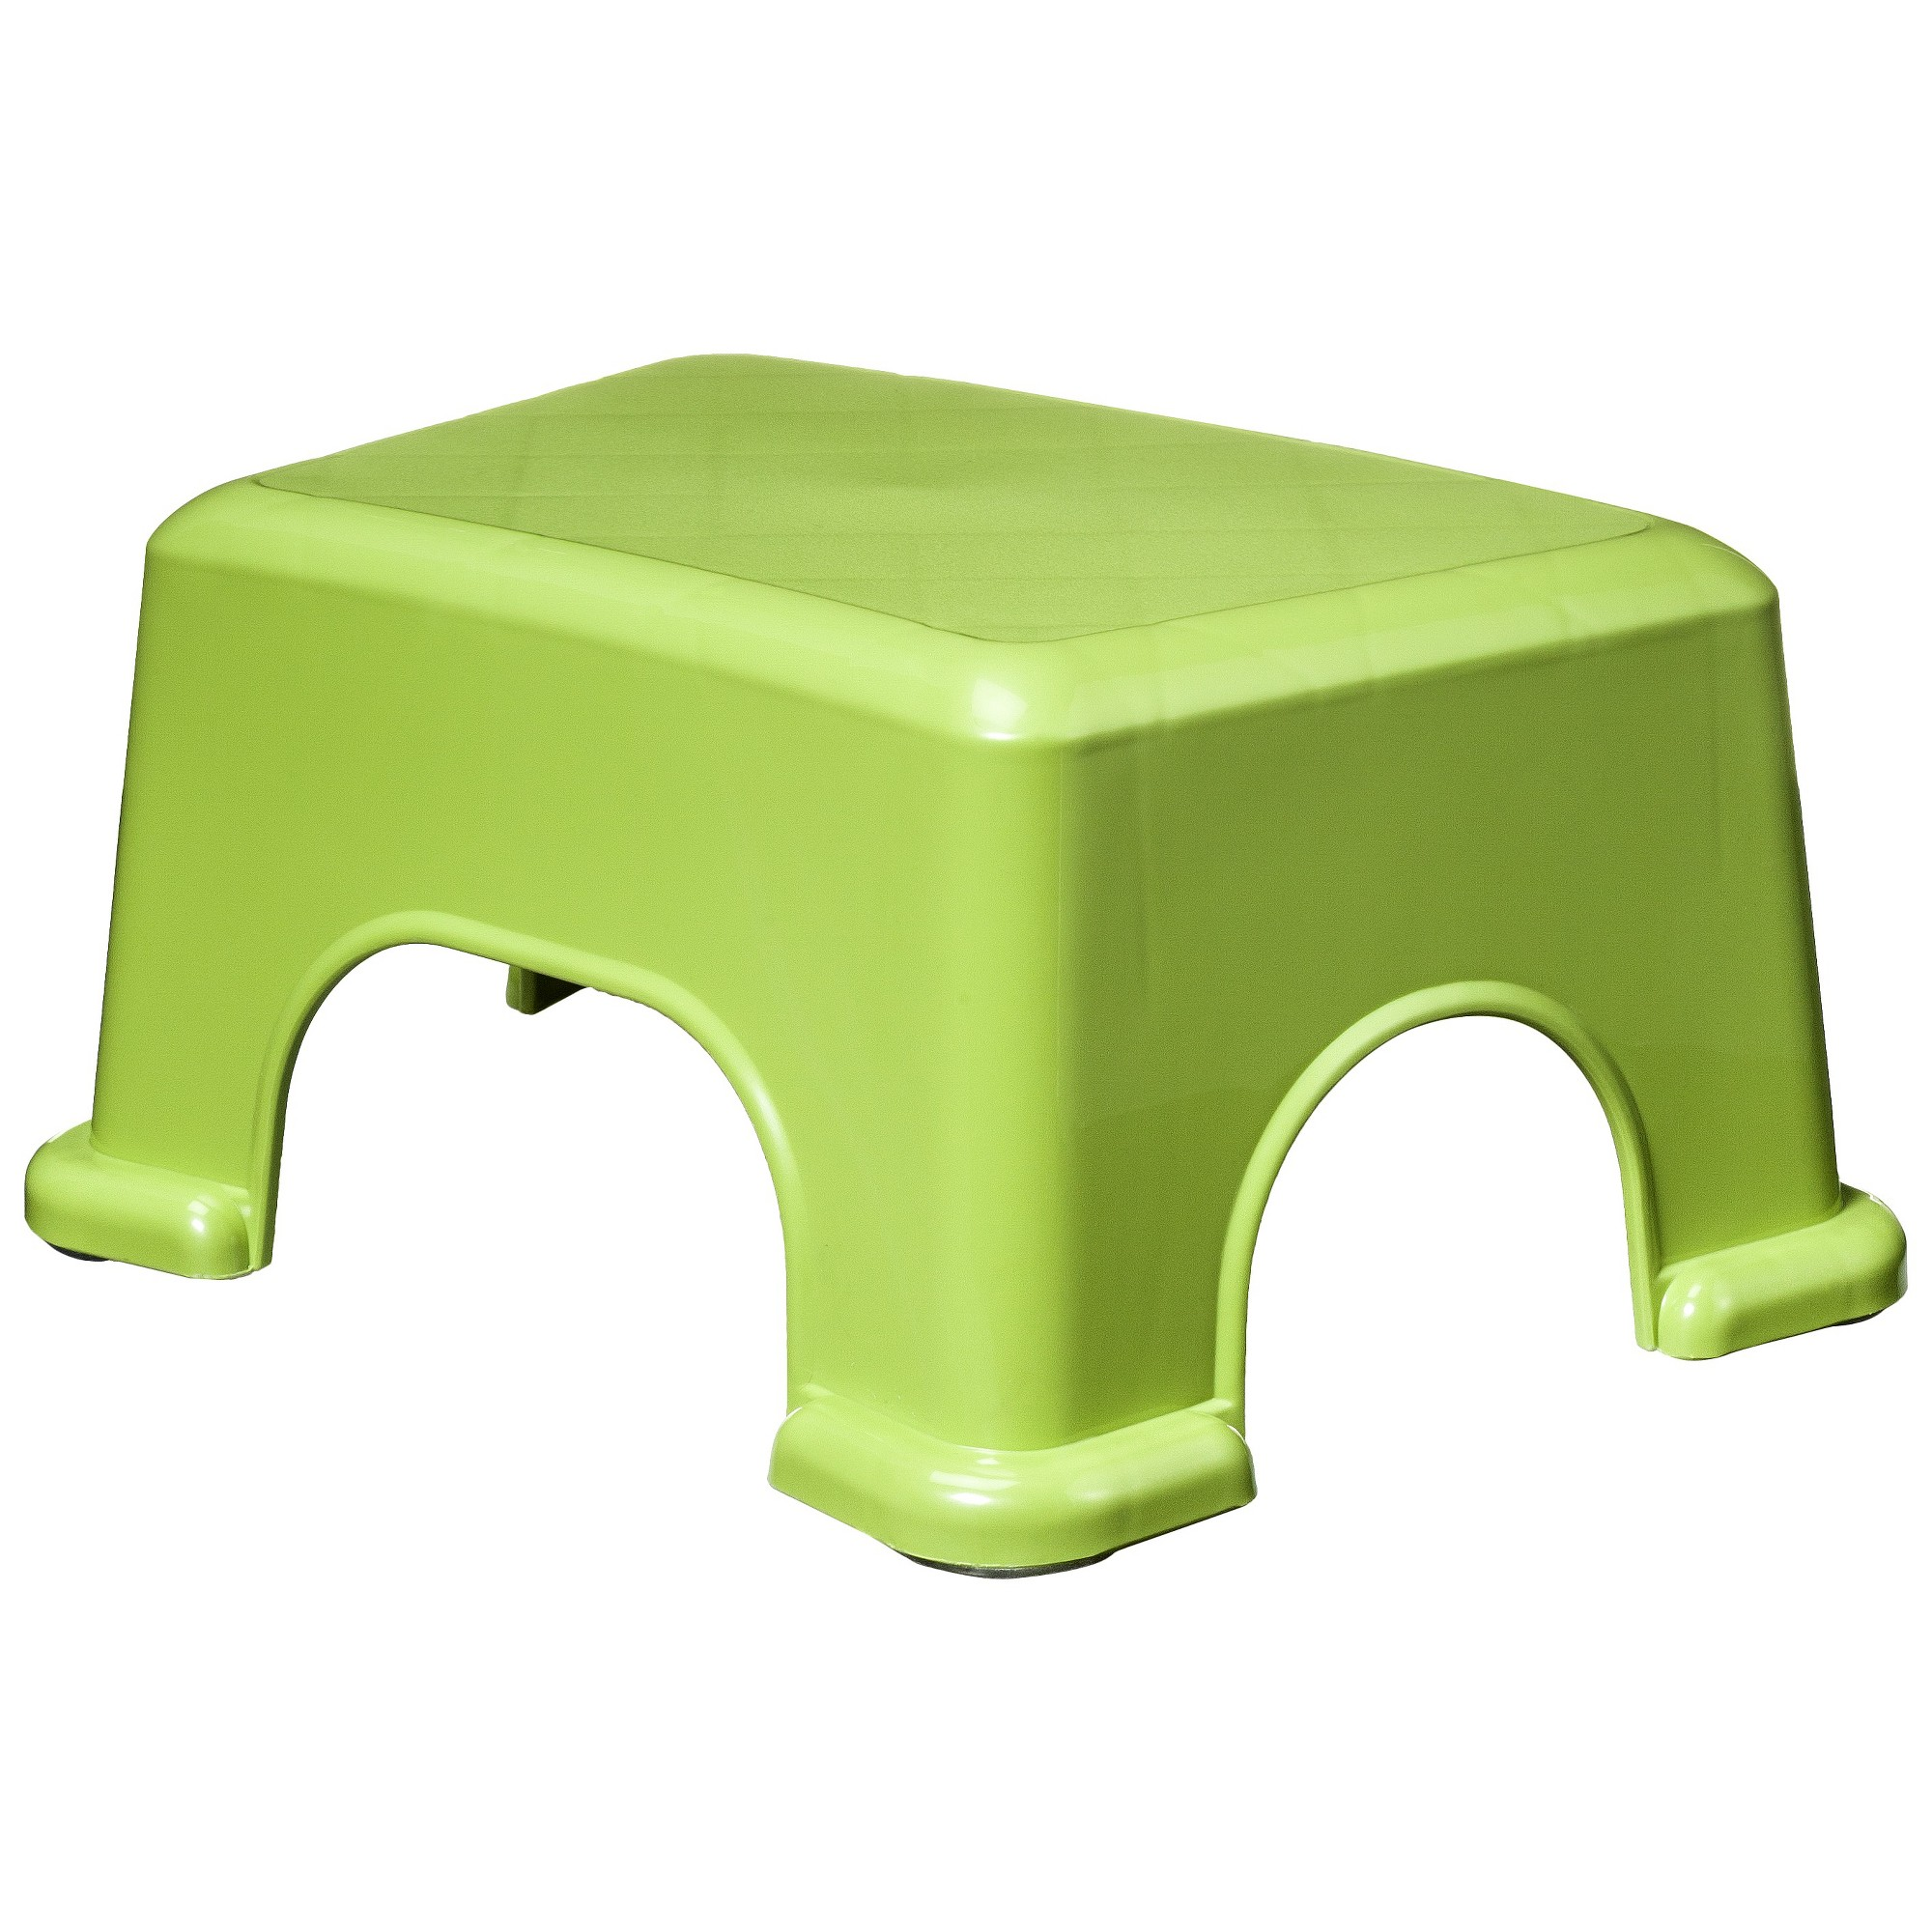 of stools bed size step bar to with backs com stool wooden recall within excellent target kitchen folding